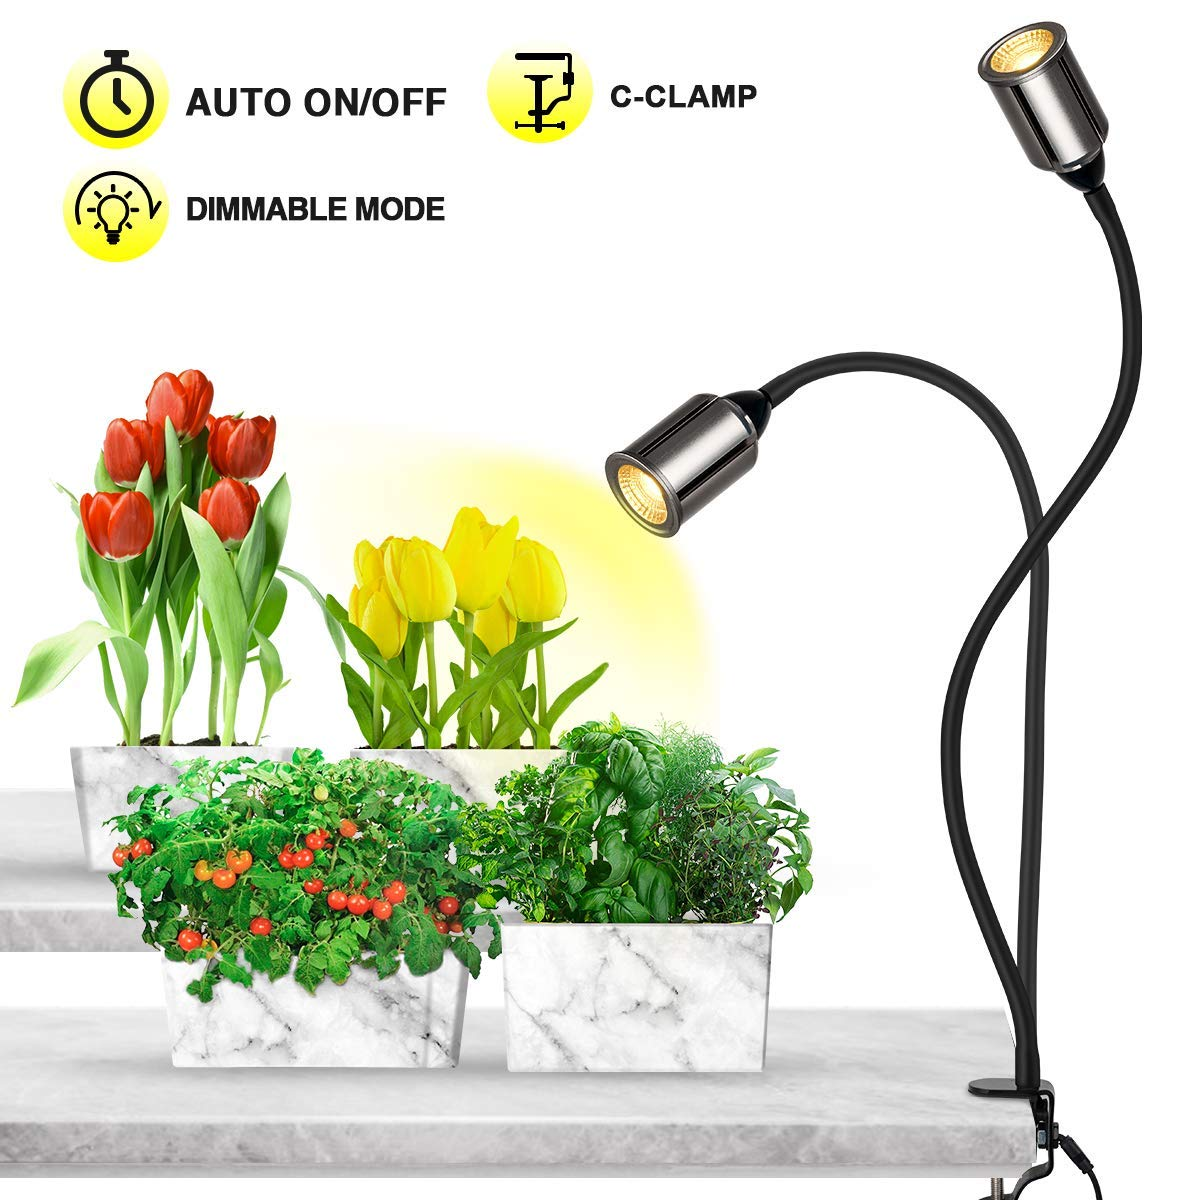 Bozily Grow Lights for Indoor Plants Full Spectrum with Timer-75W COB CREE Sunlike Plant Light with 3/6/12/24H Timer 5 Dimming LED Sunlight Growing Lamp for Plants Seedling Blooming Fruiting [Upgrade] by Bozily